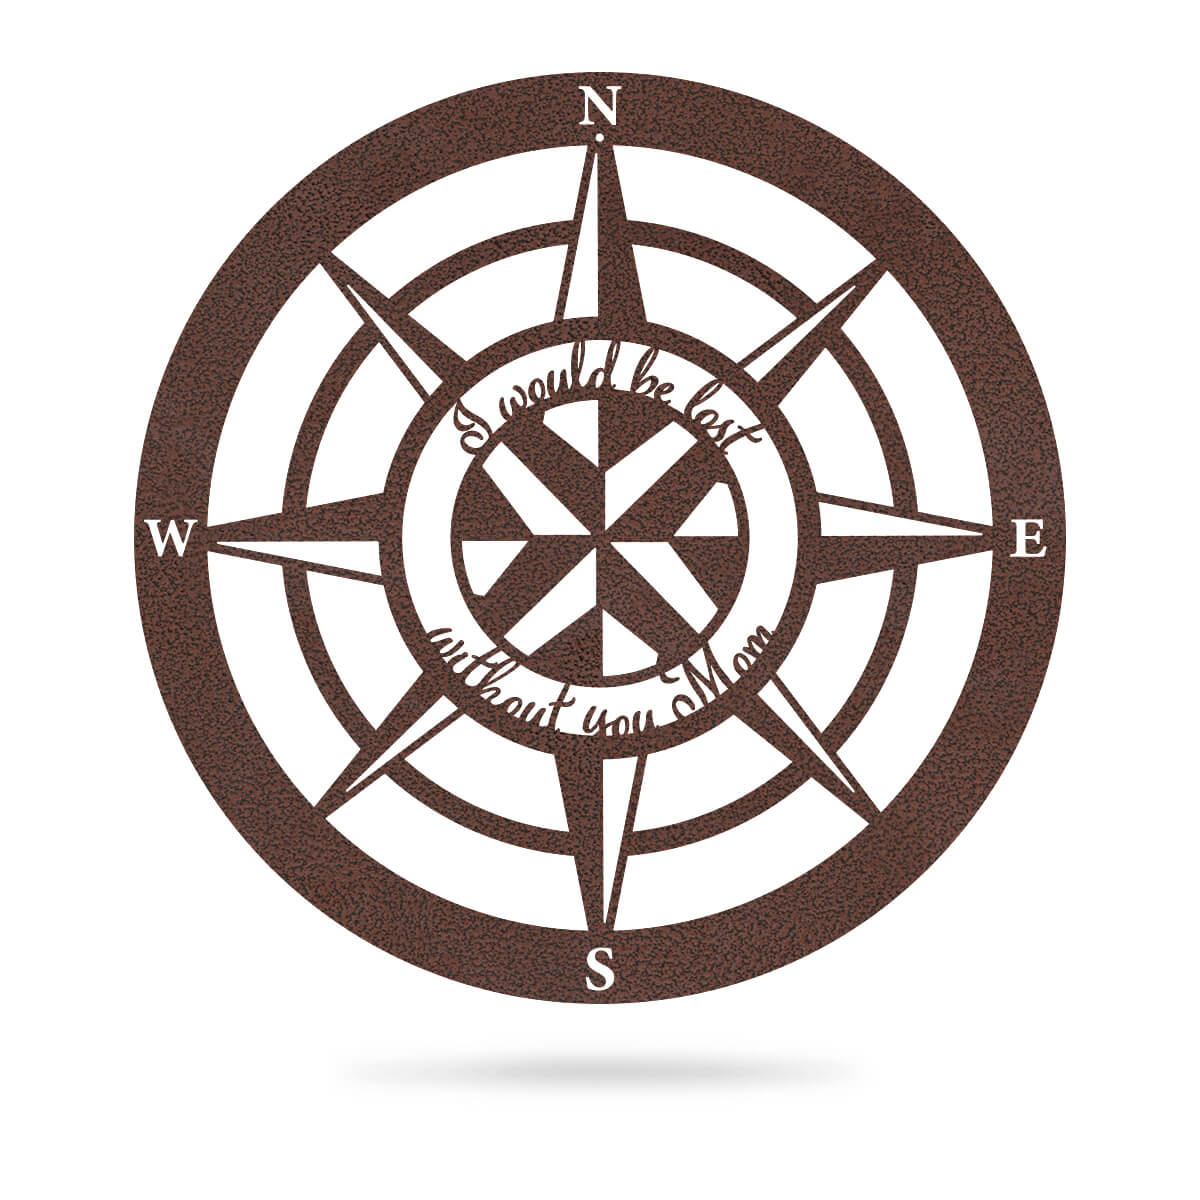 "Lost Without Mom Compass Wall Art - Type A 18"" / Penny Vein - RealSteel Center"